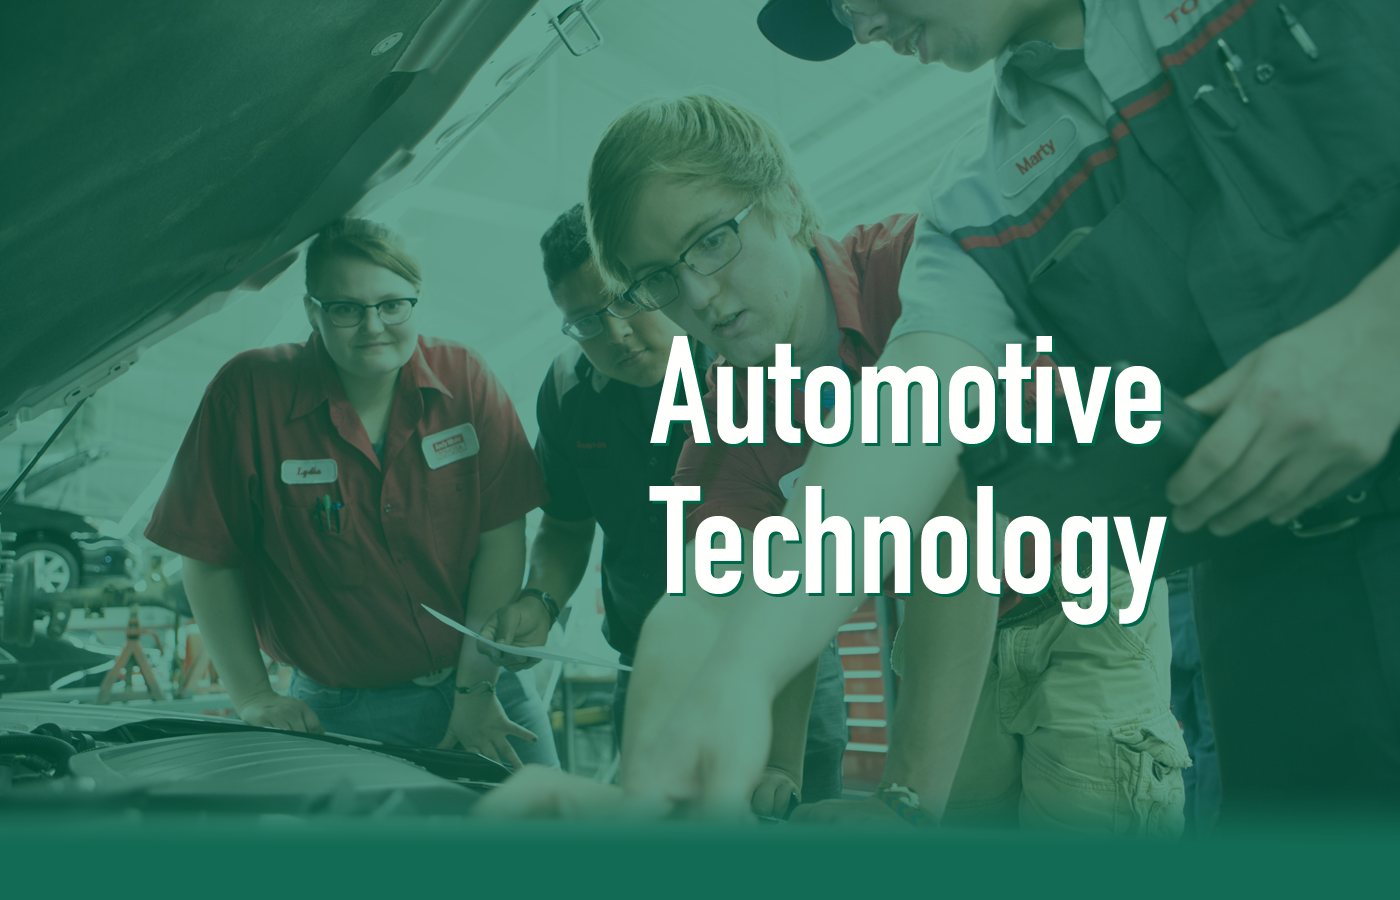 HANDS-ON TRAINING IN AUTOMOTIVE TECHNOLOGY!